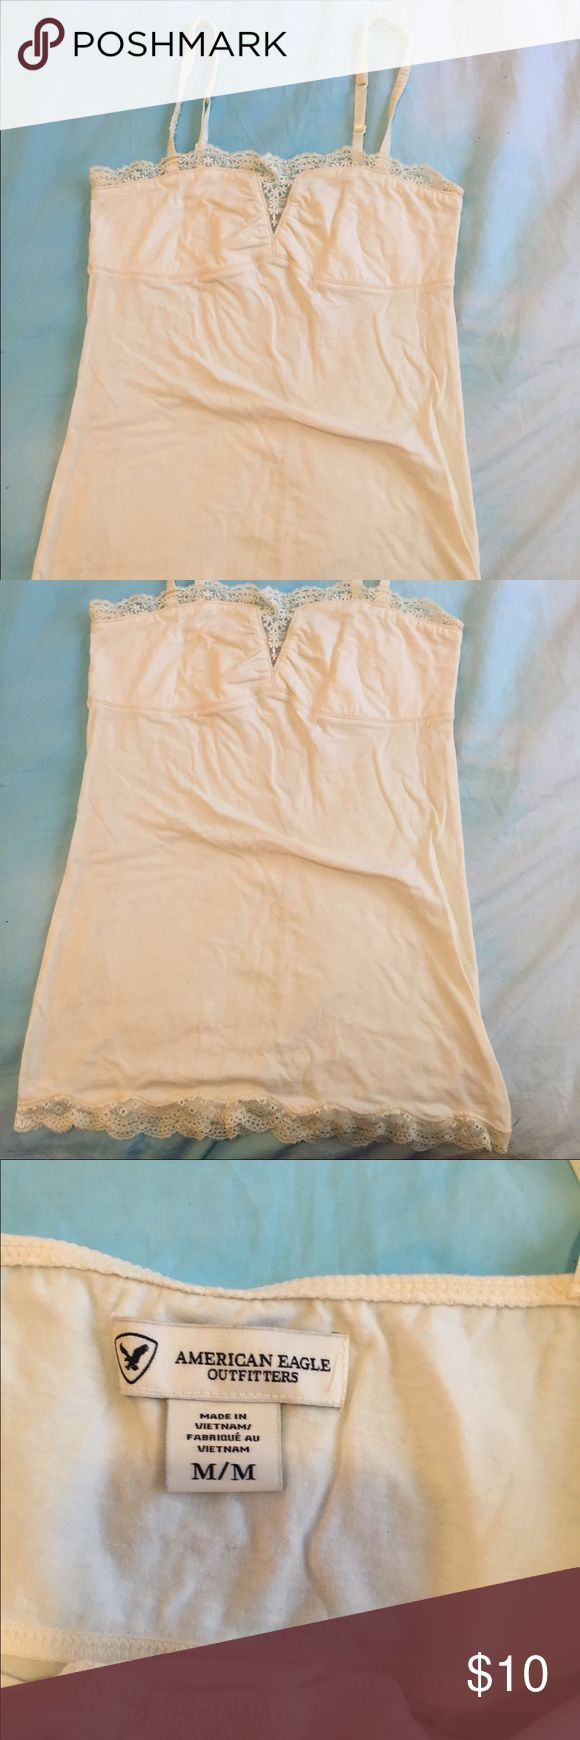 American Eagle cami Cute American Eagle cami with shelf bra. Worn once. American Eagle Outfitters Tops Camisoles